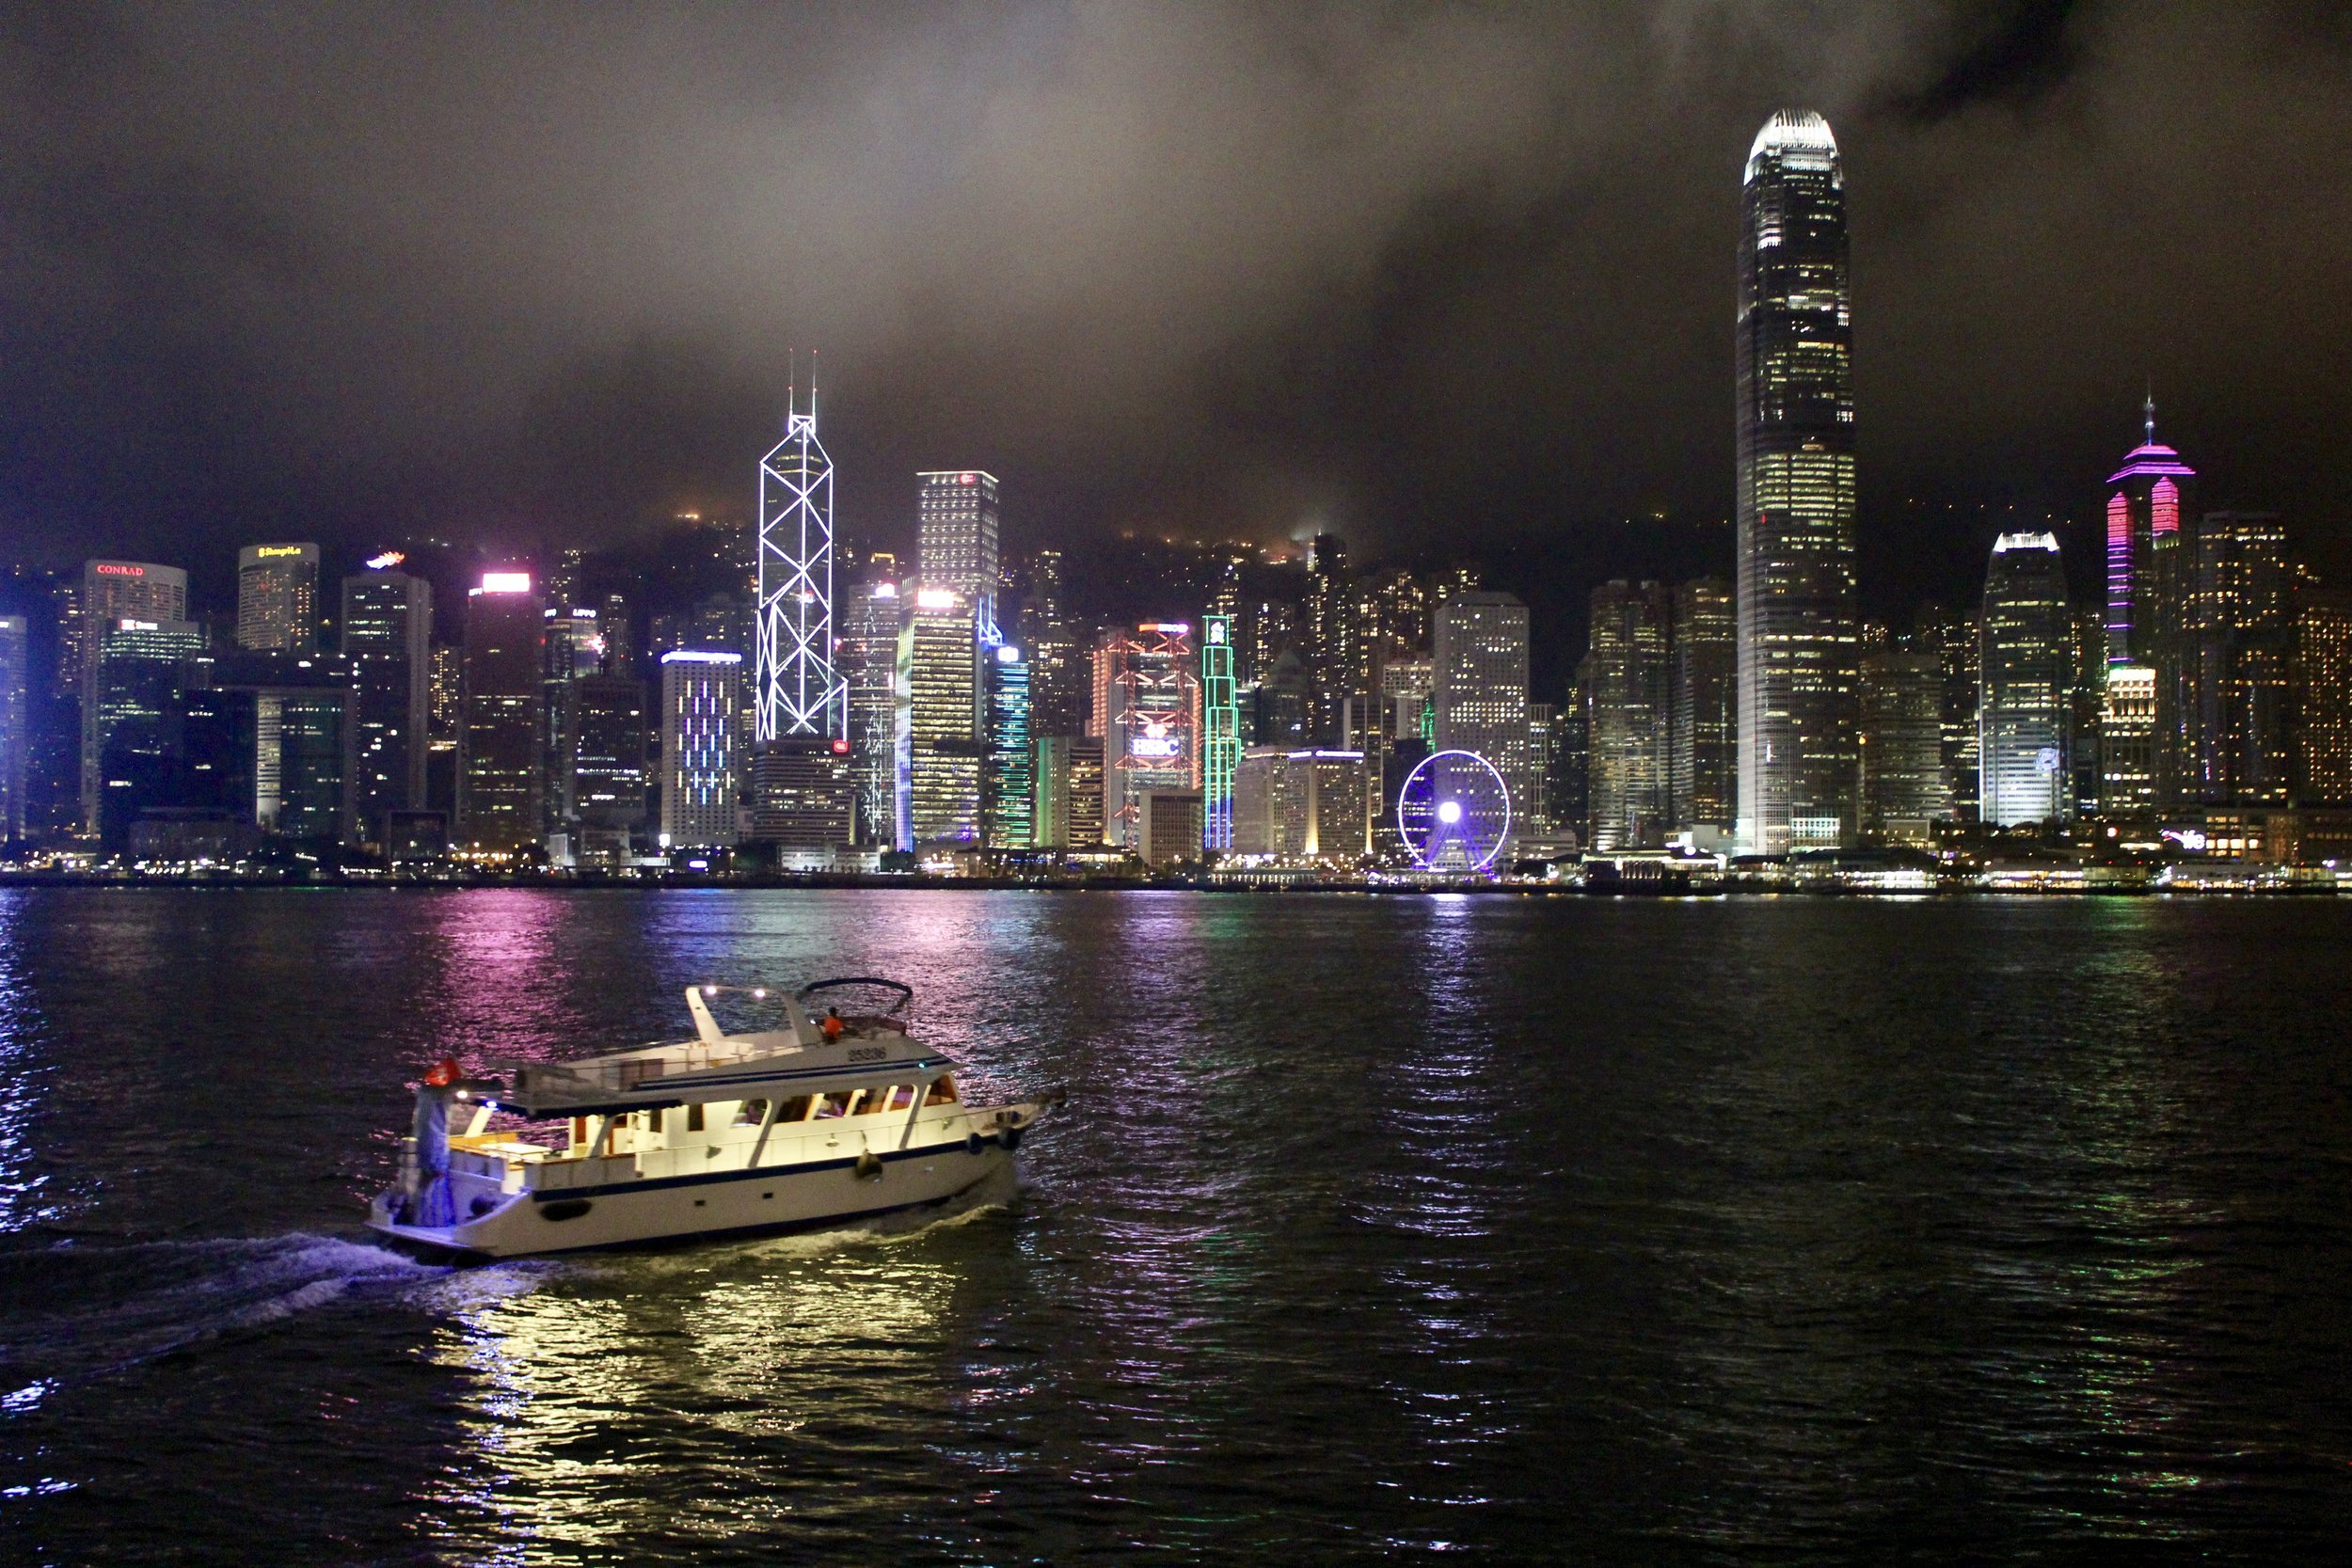 Looking out at Hong Kong Island across the harbor from Kowloon. A must-see for any HK visit!